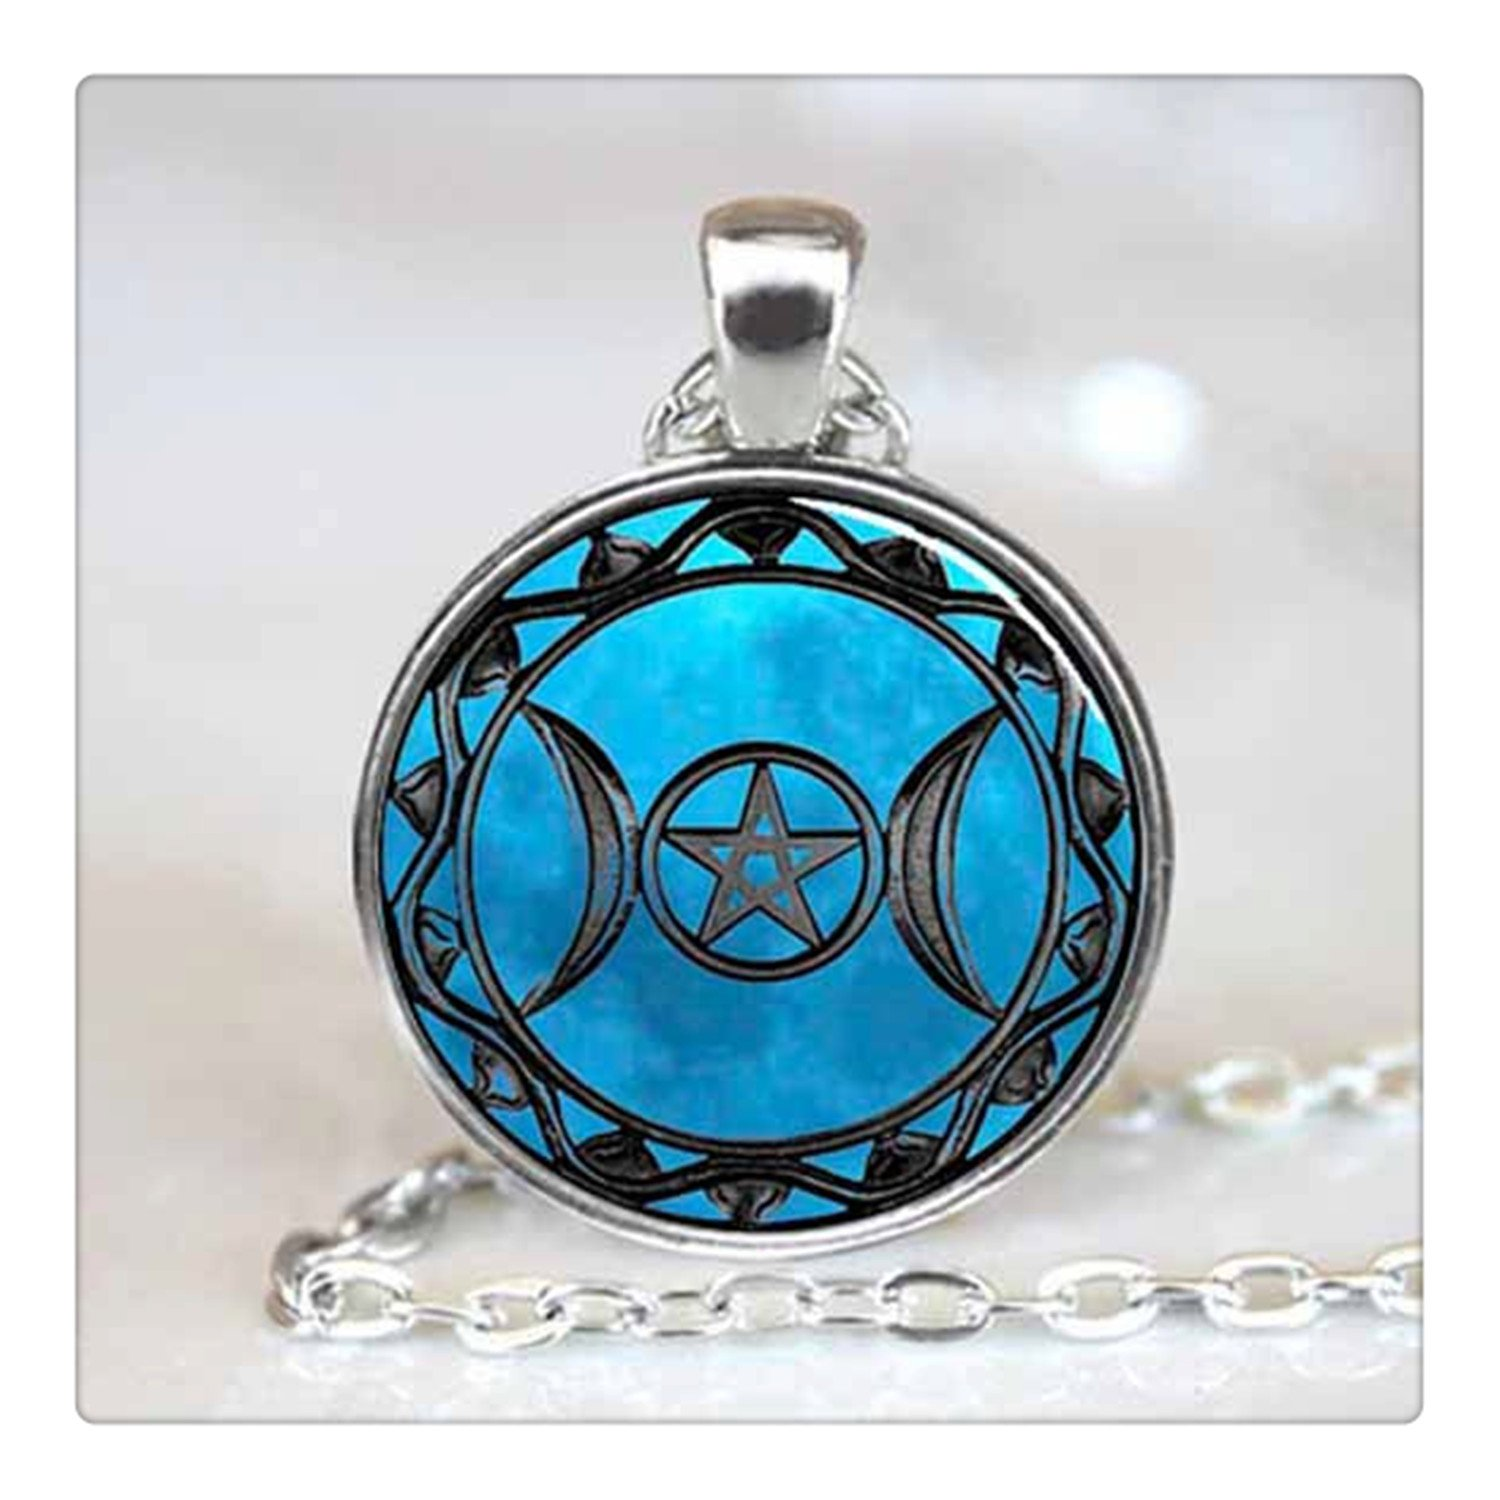 pentagram goddess dome jewelry blue women choker from triple necklaces in silver wiccan witch religious moon pendant necklace chain black glass item